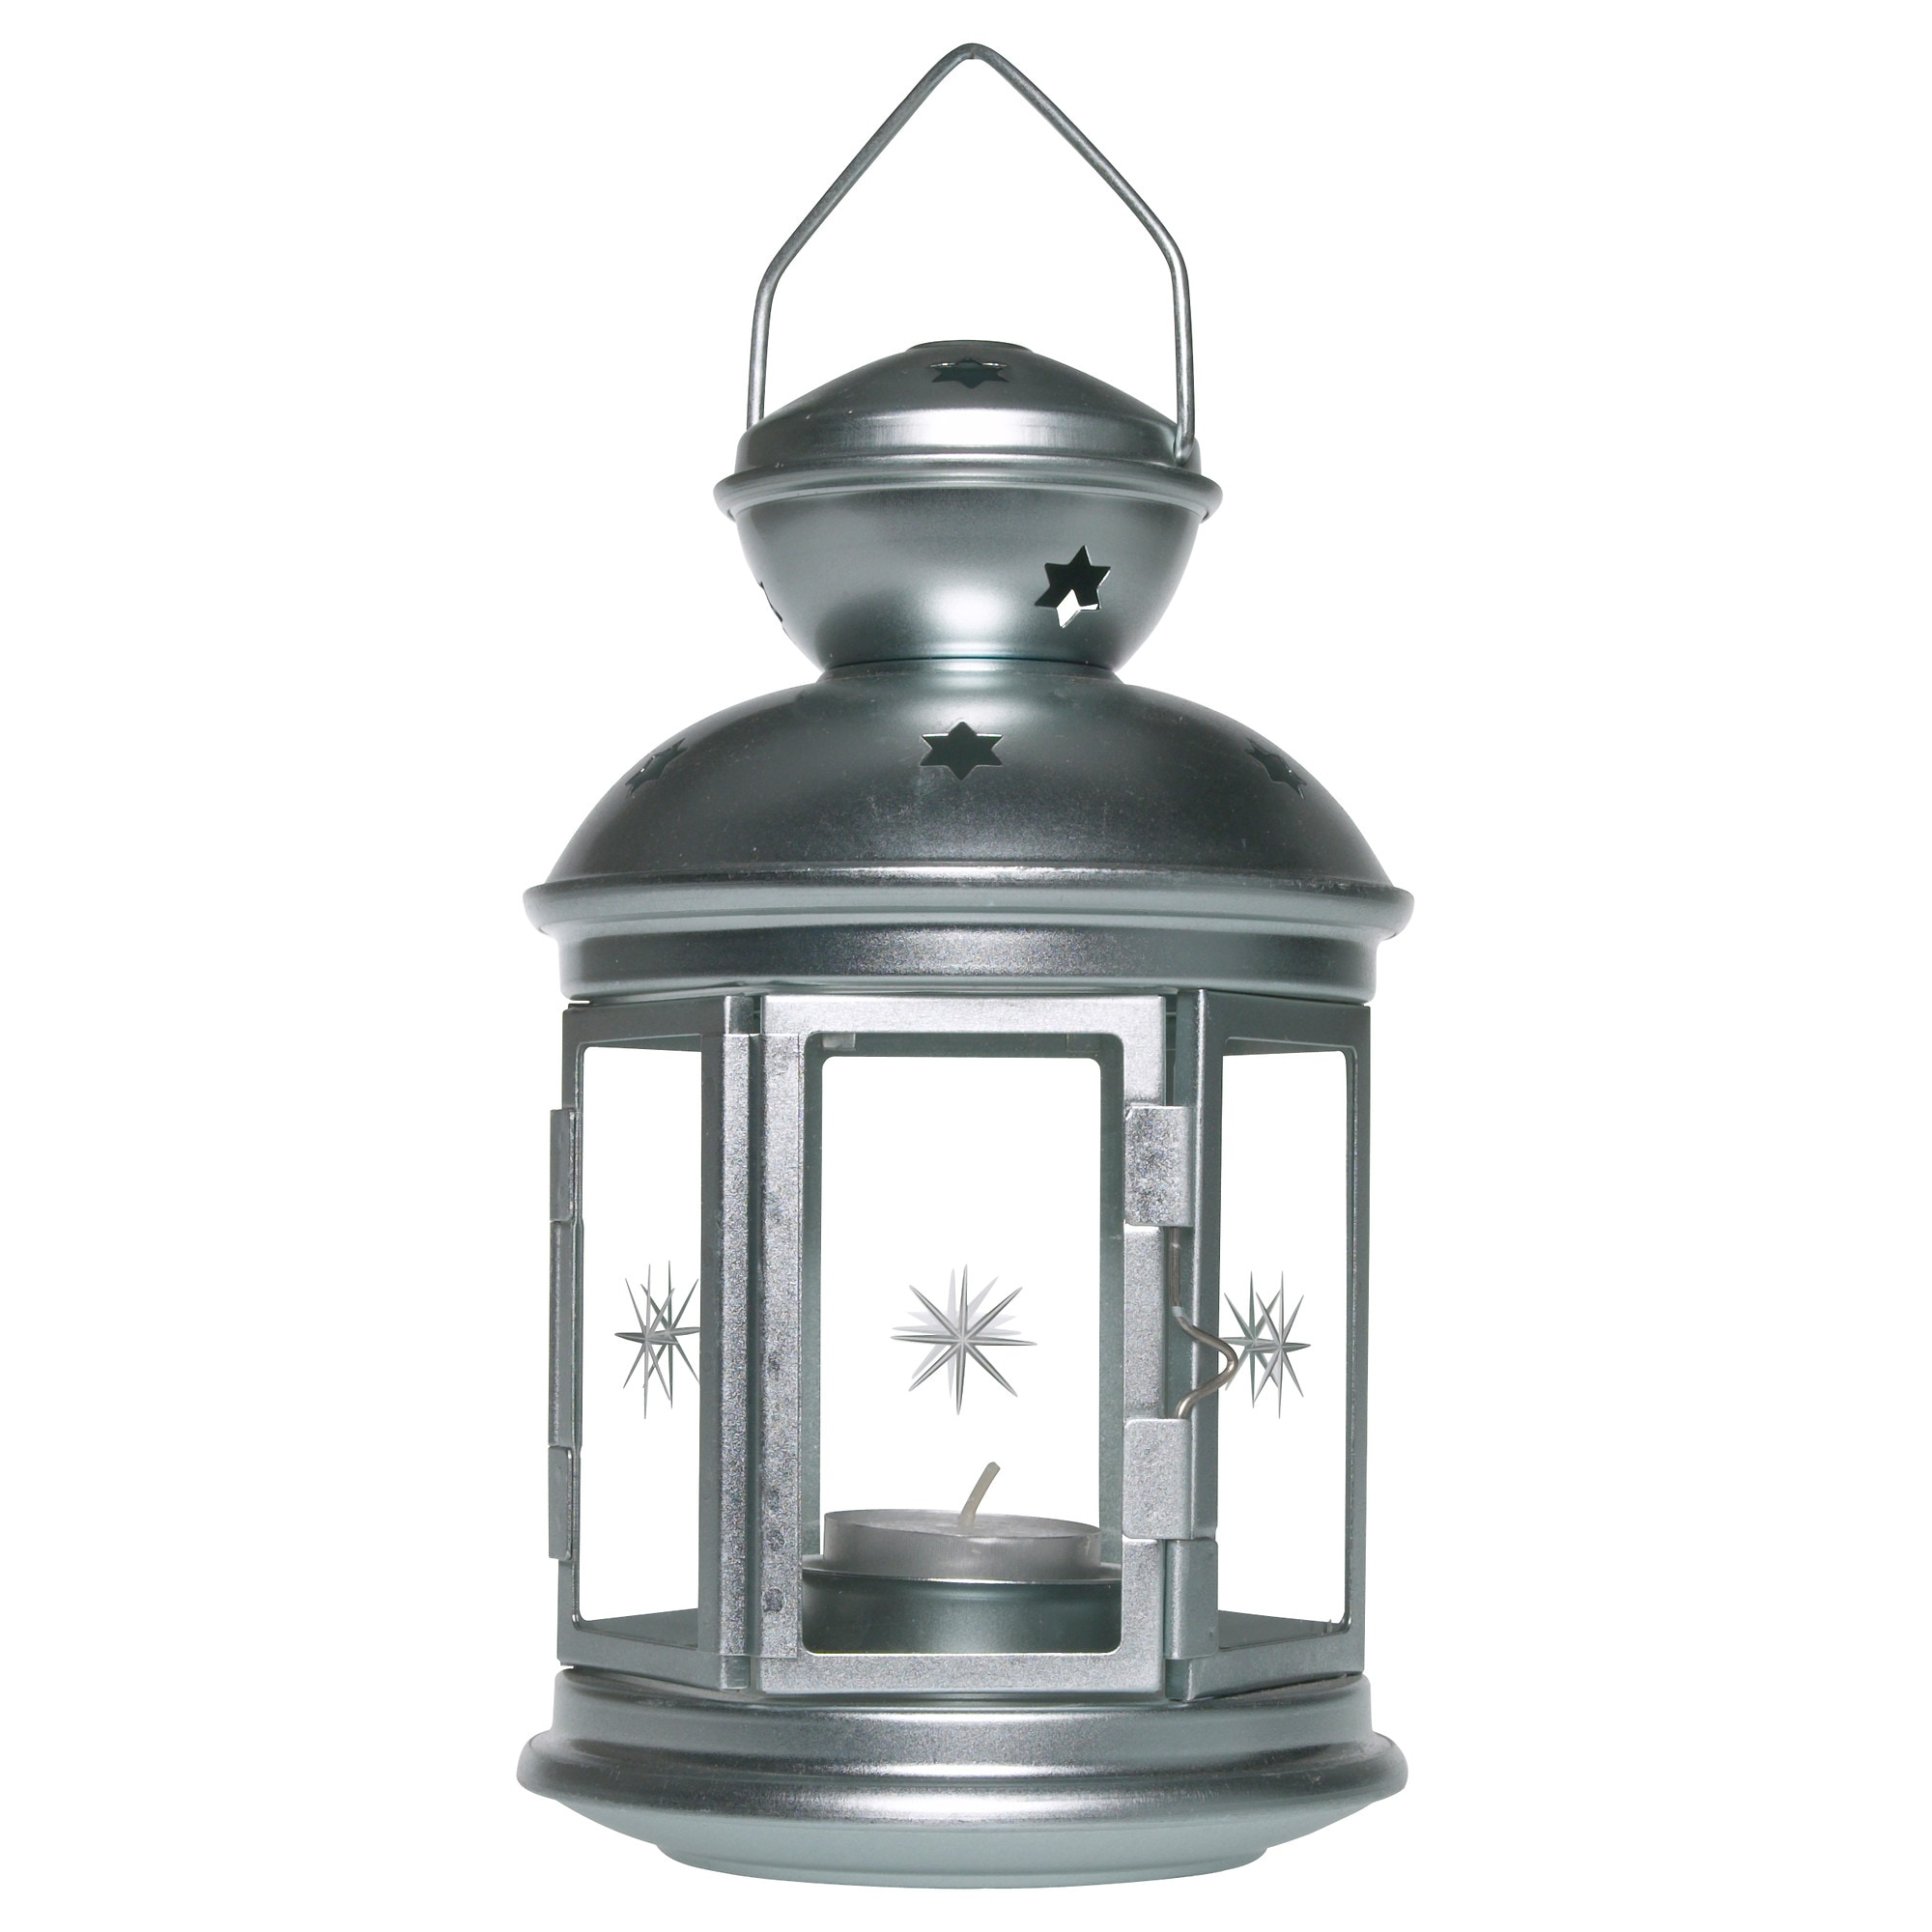 Delightful ROTERA Lantern For Tealight   IKEA